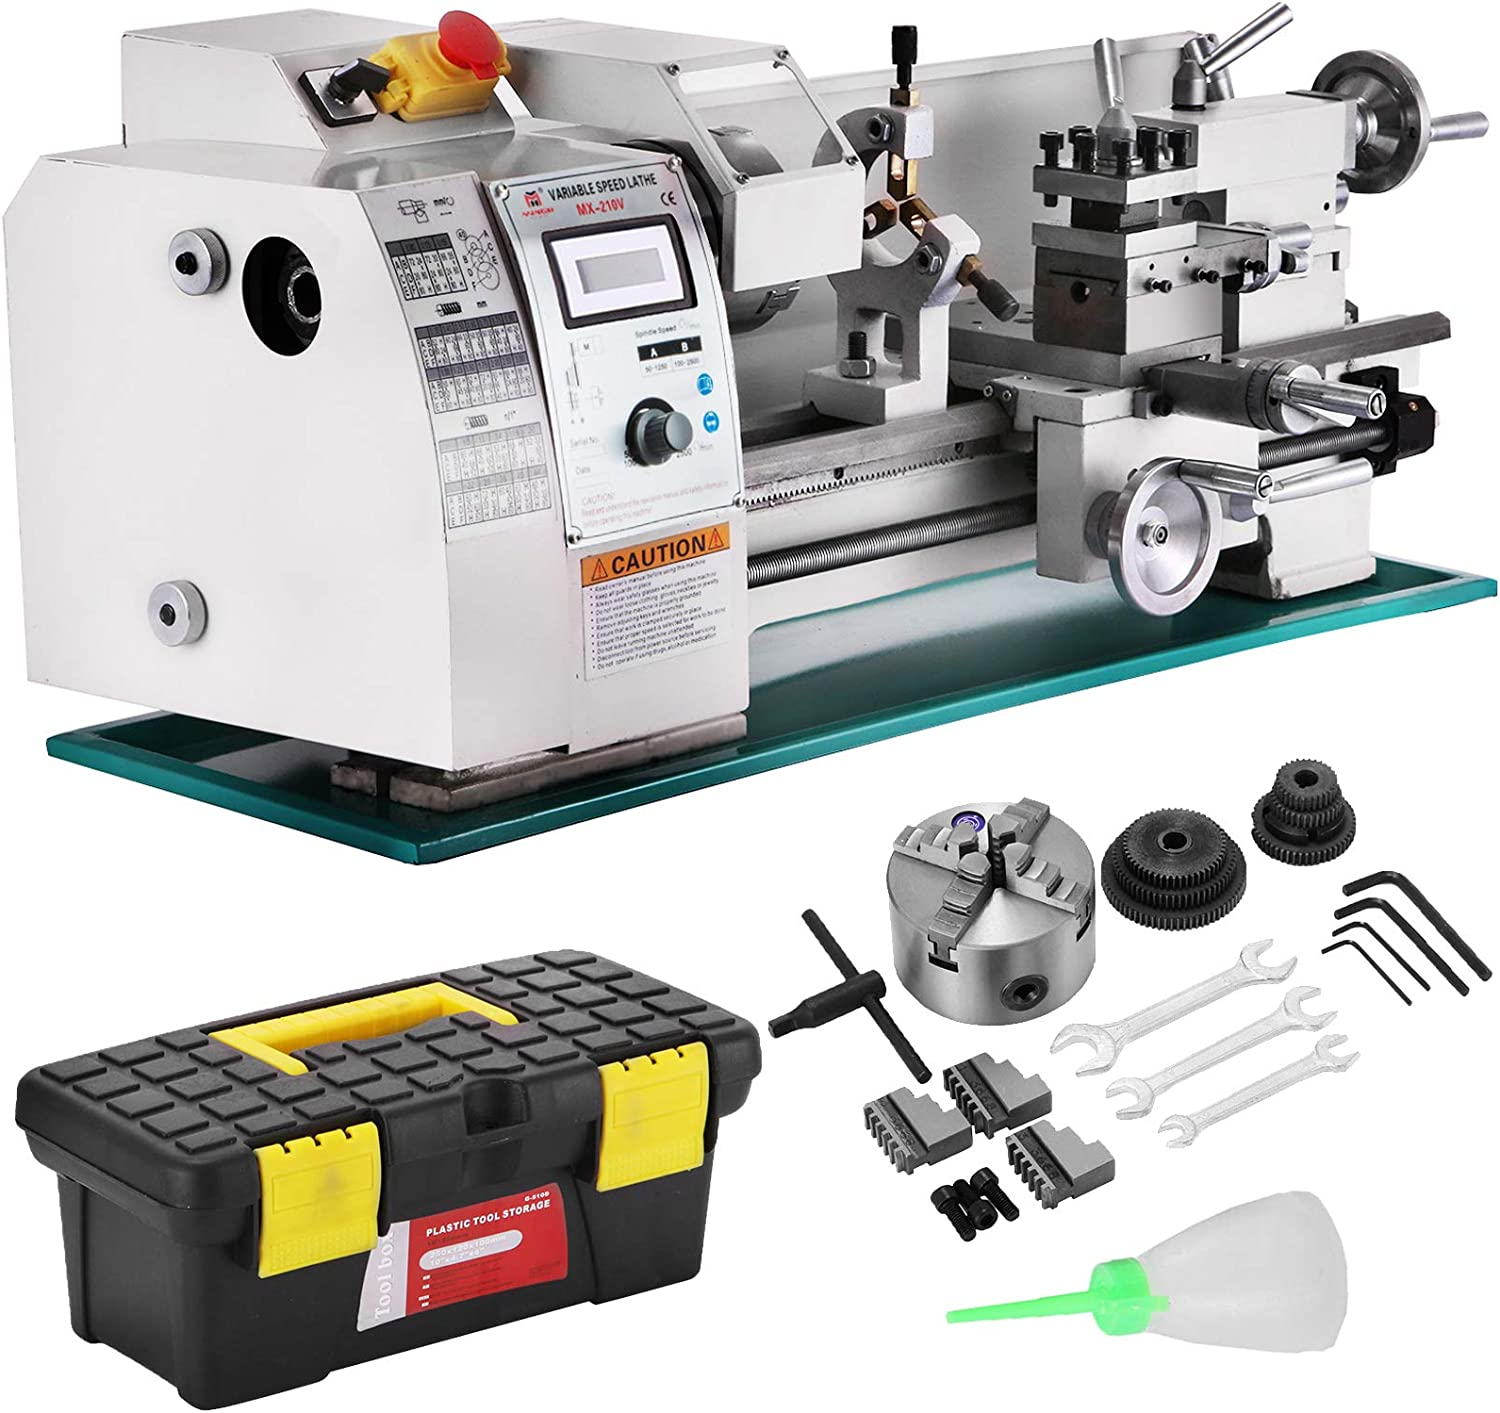 Mophorn 8x16 Luxury Version Metal Bench Top Sale special price Lathe Max 50% OFF 750W Precision